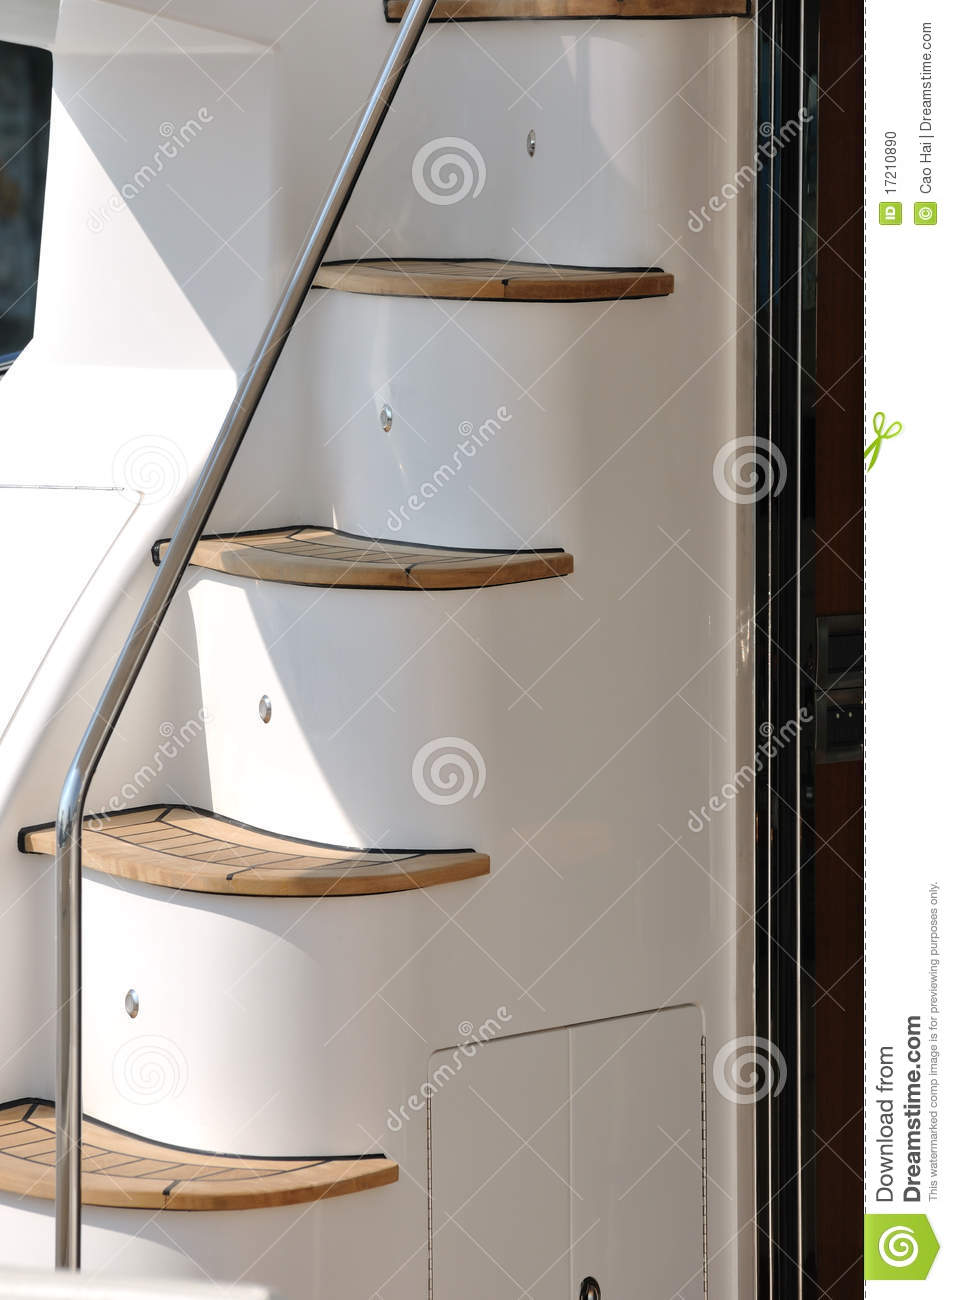 Stair of yacht in detail stock photo  Image of marine - 17210890